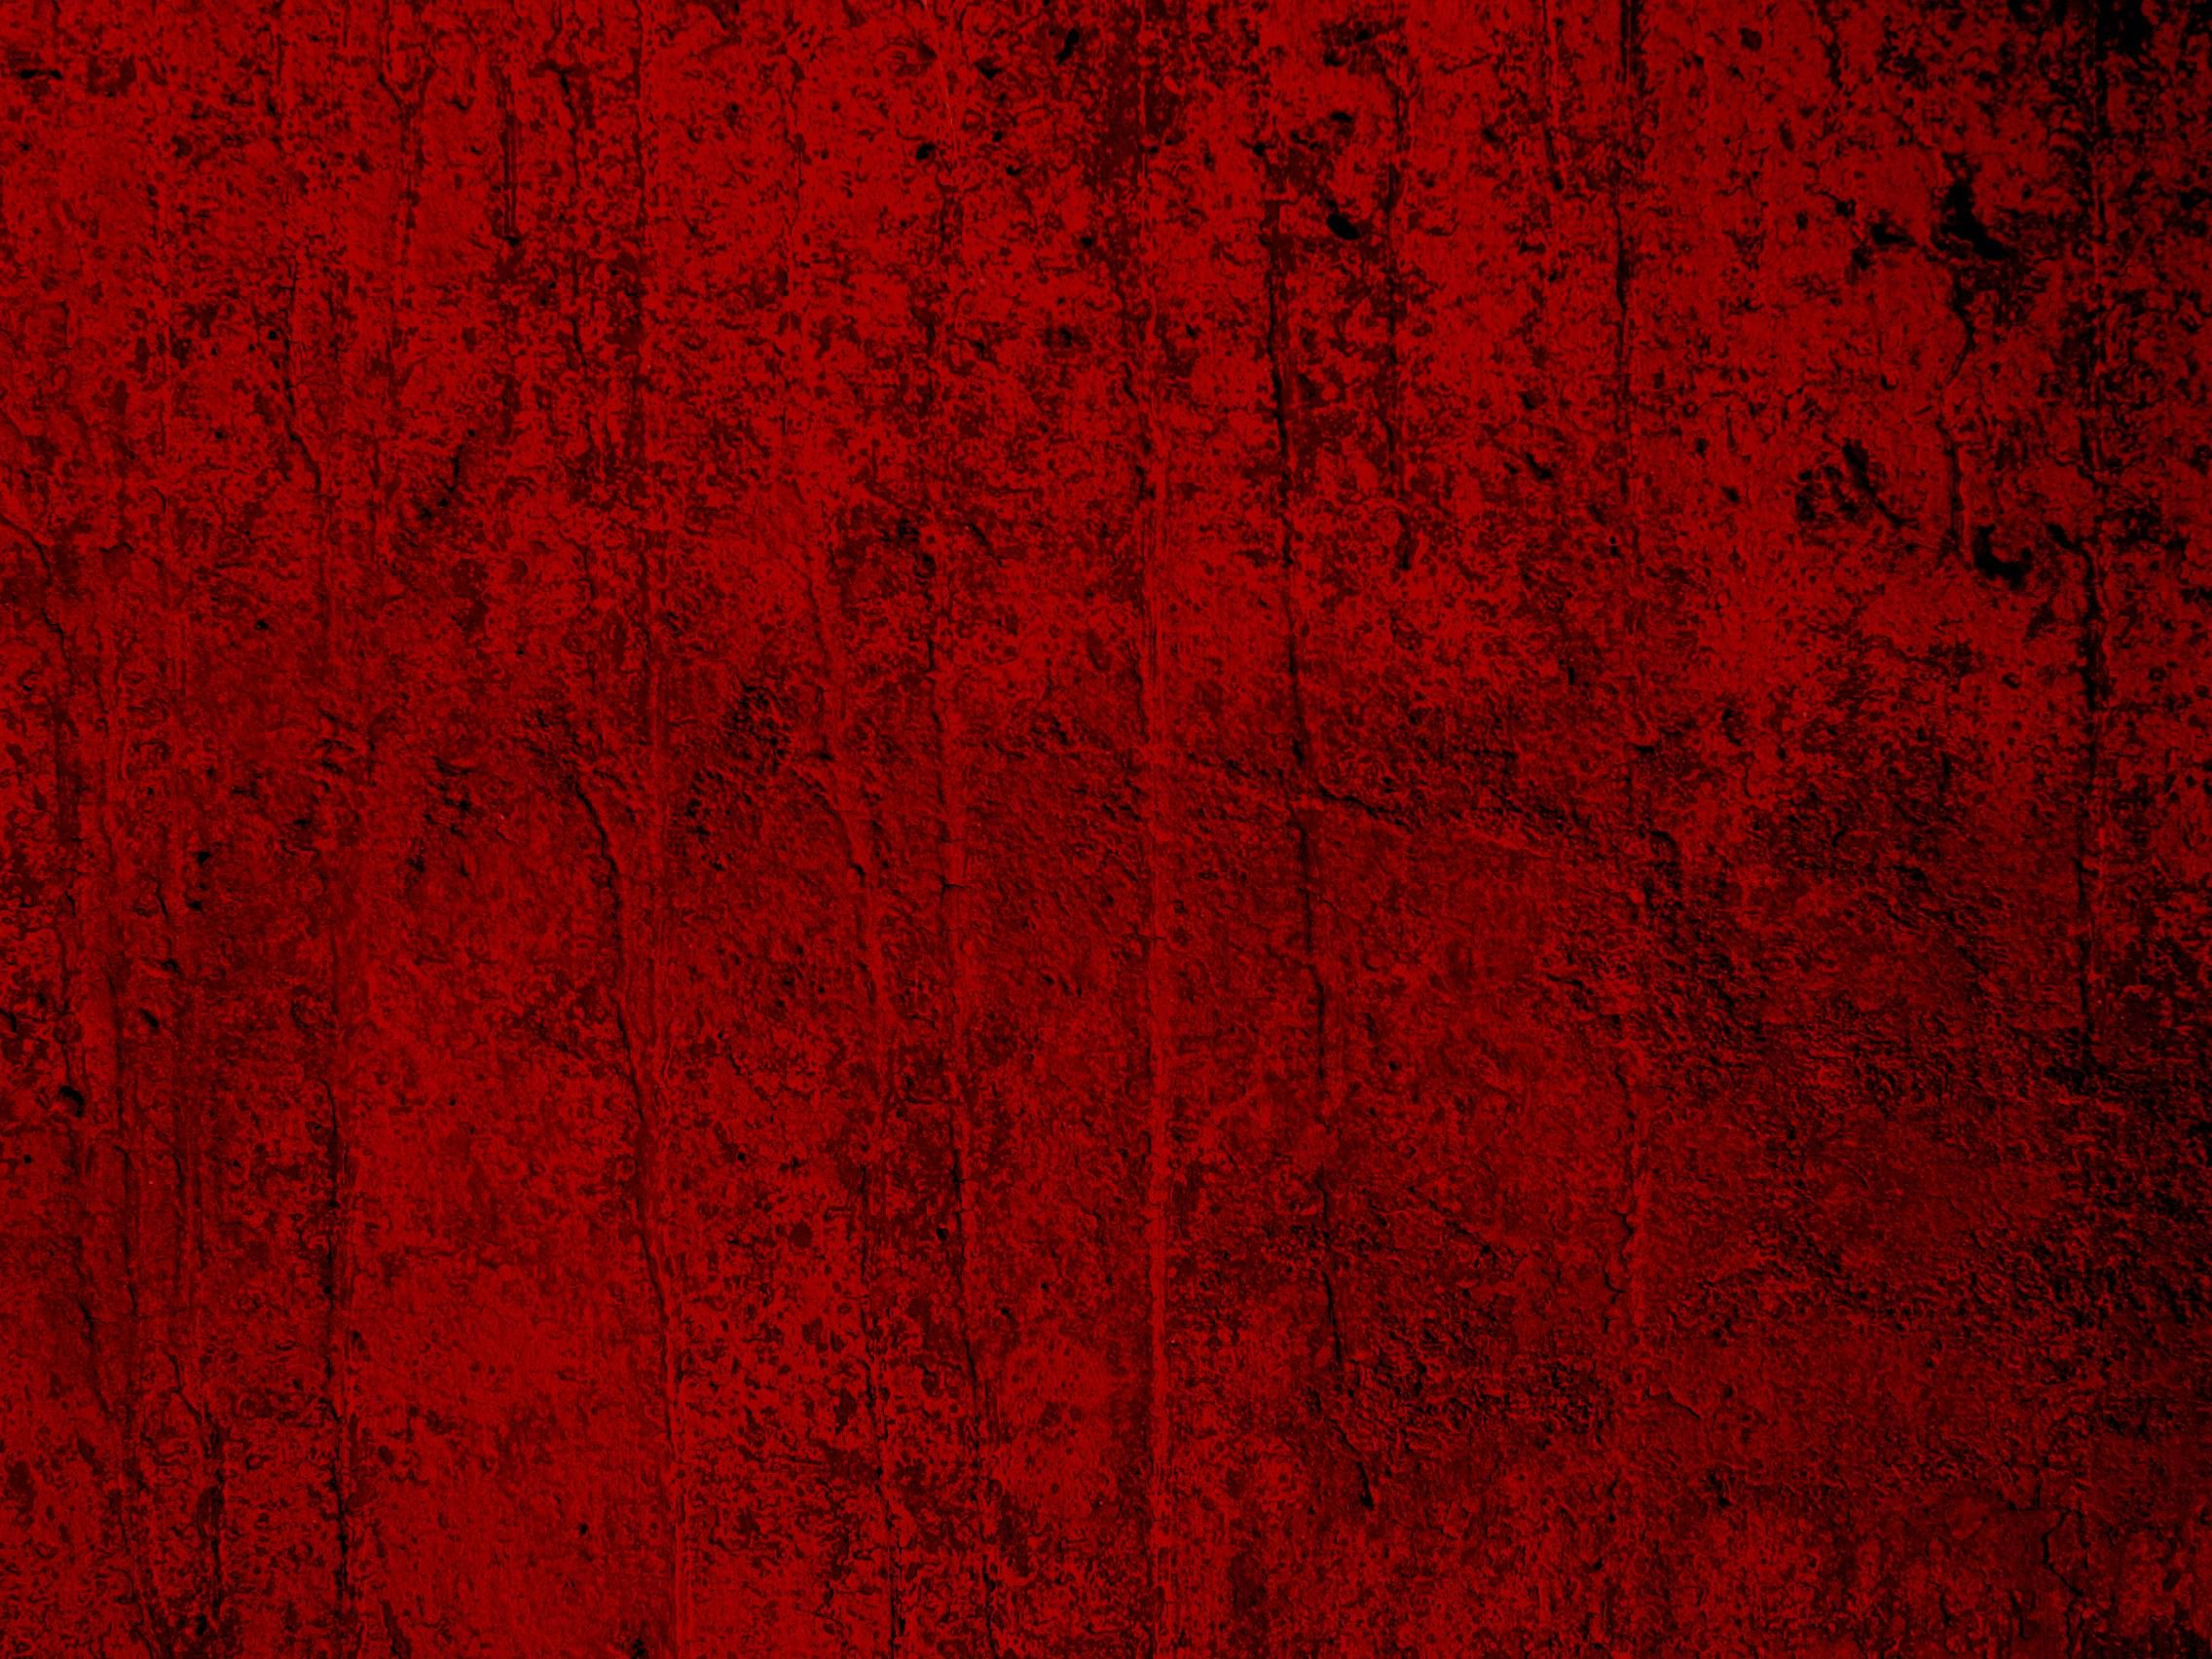 Red Texture Wallpaper Red wallpaper Texture Wallpaper iphone love